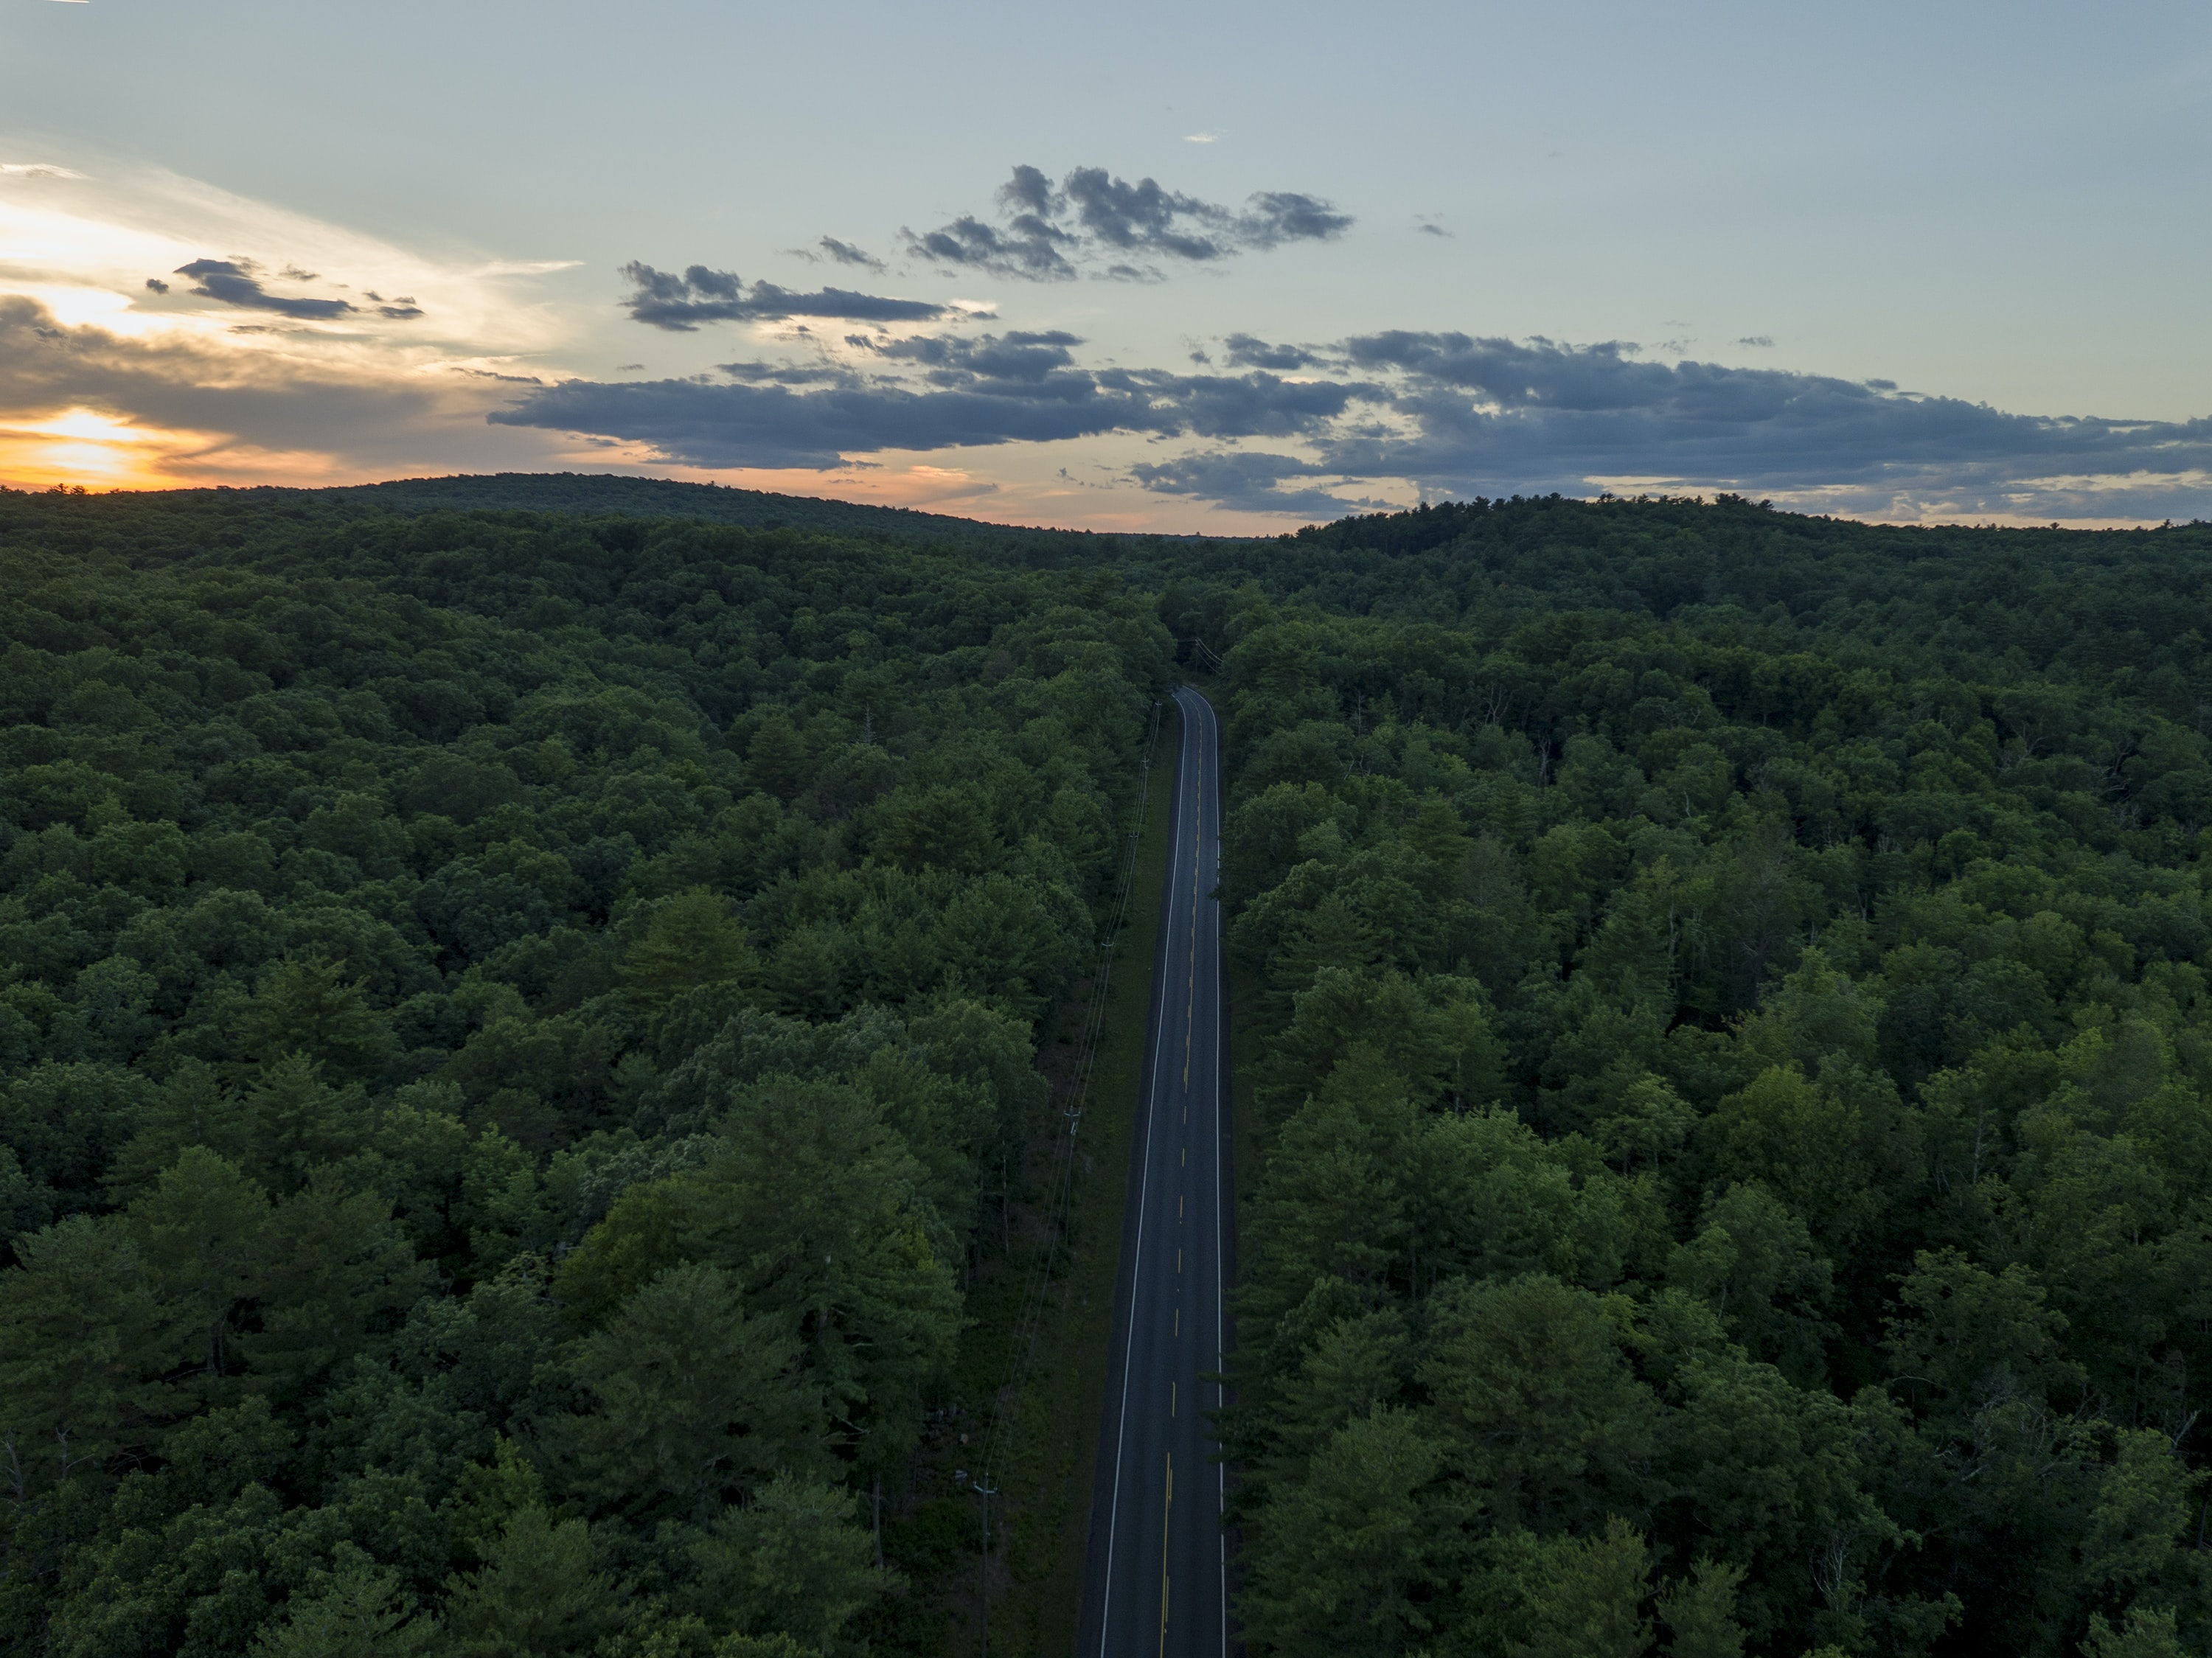 aerial photography of road between trees during golden hour